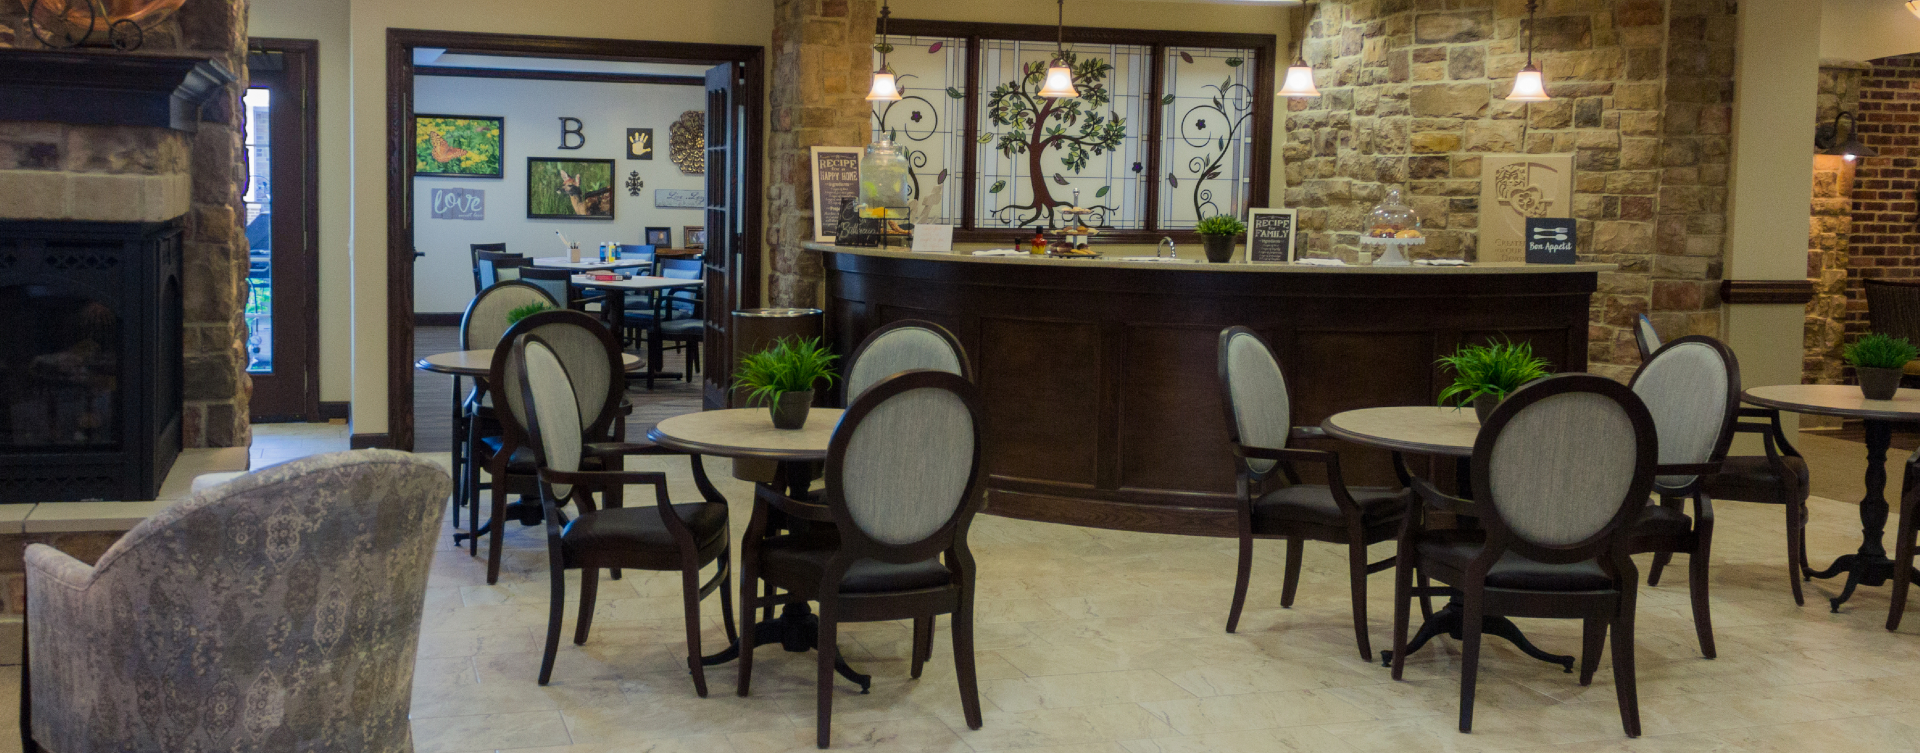 We're serving up snacks, beverages and service around the clock in the bistro at Bickford of Suffolk